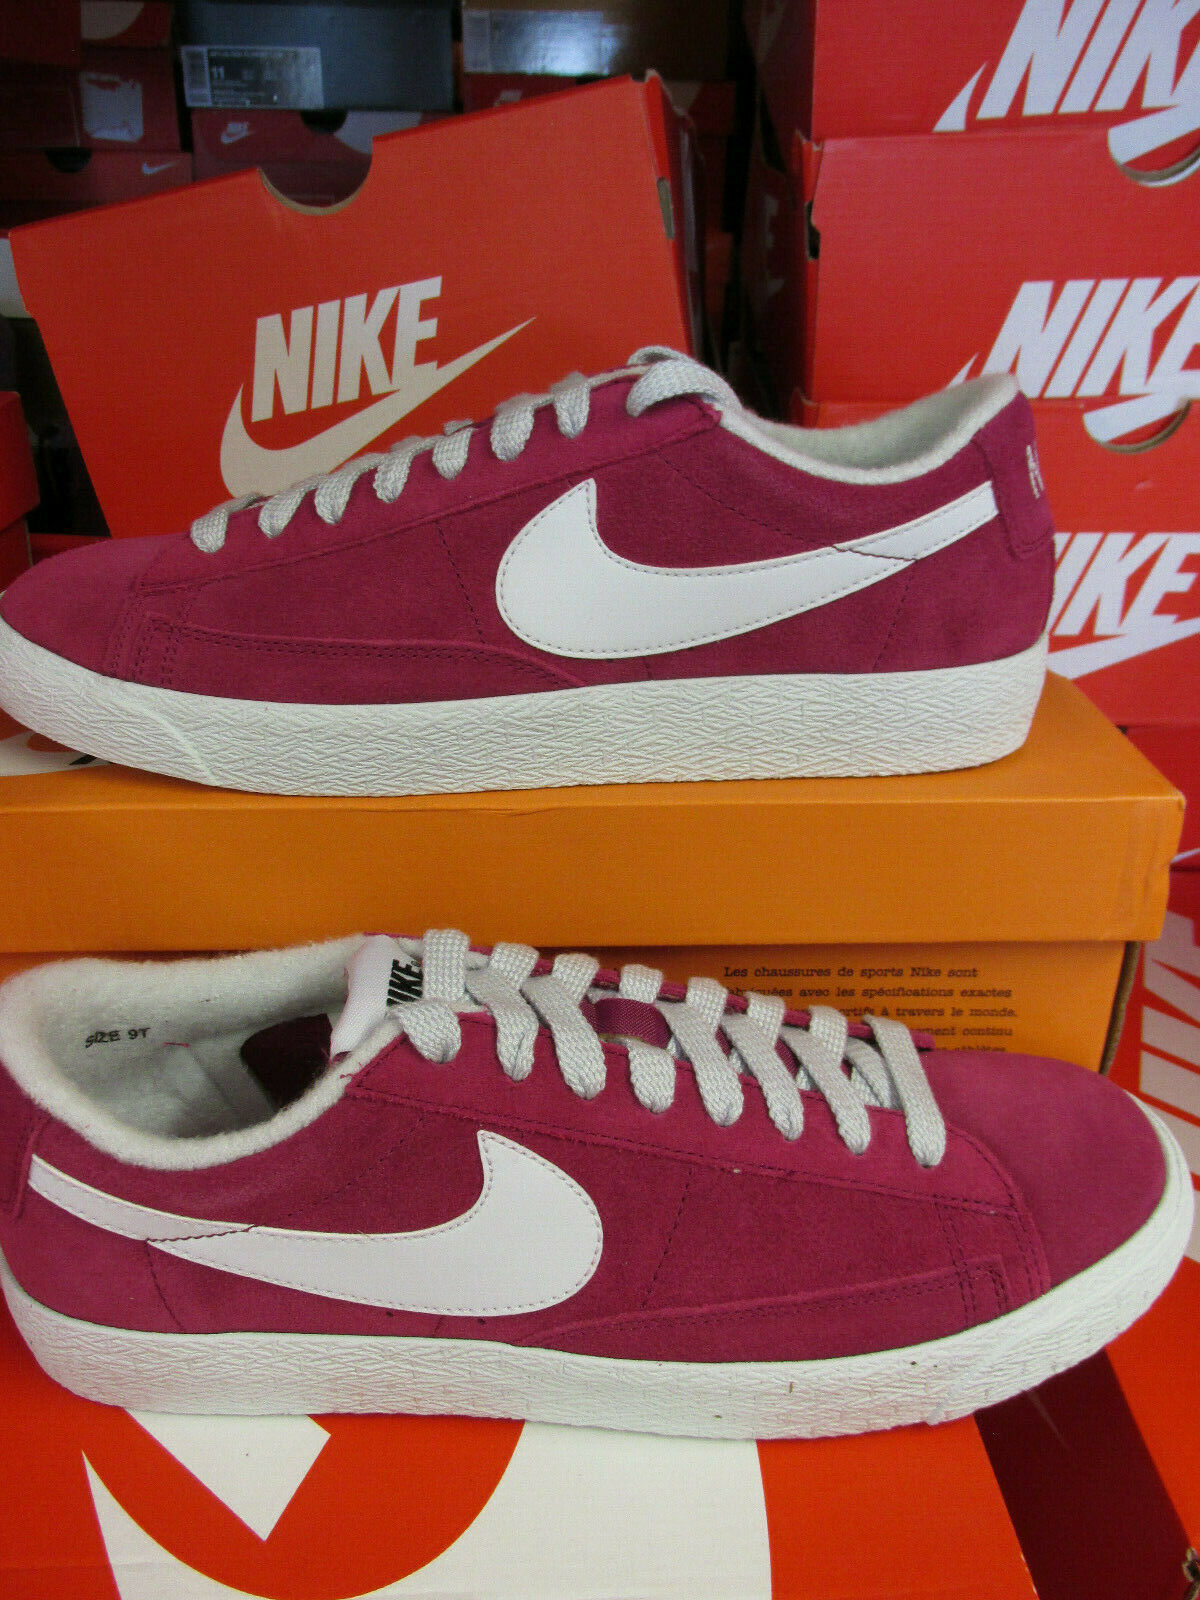 best website dec85 636da Nike Blazer Low PRM PRM PRM VNTG Suede Mens Trainers 538402 603 Sneakers  shoes CLEARANCE 6aab88